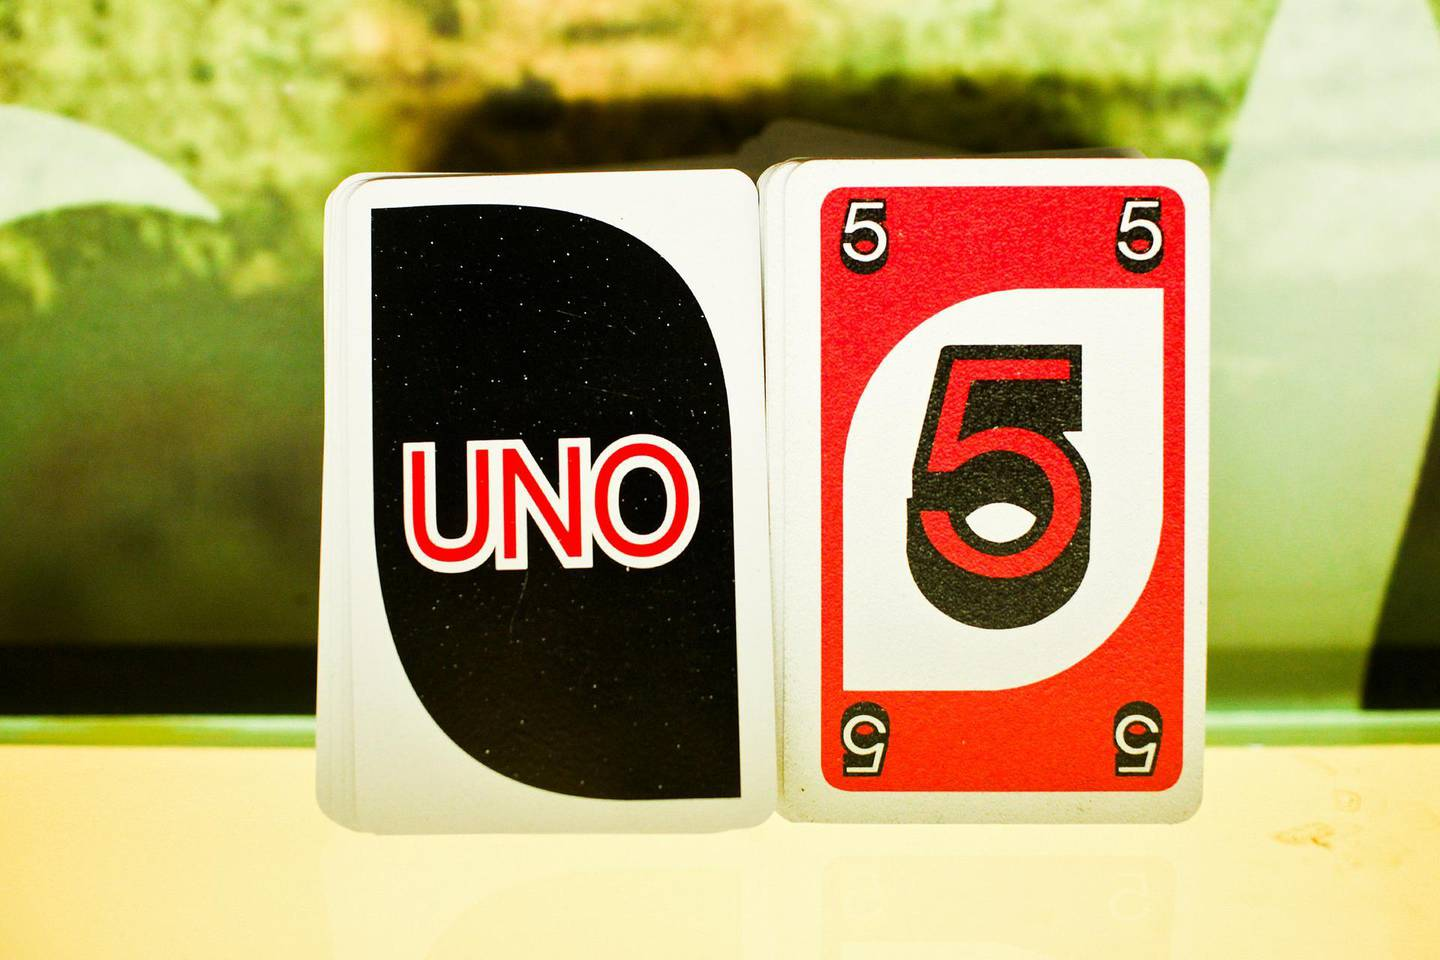 May 24, 2013, Dubai, UAE: The Tea House Junction, a cafe in Oud Metha, is home to the city's better teas and also to its gamers. Not video gamers but board gamers.   Seen here is a deck of Uno cards.    Lee Hoagland/The National